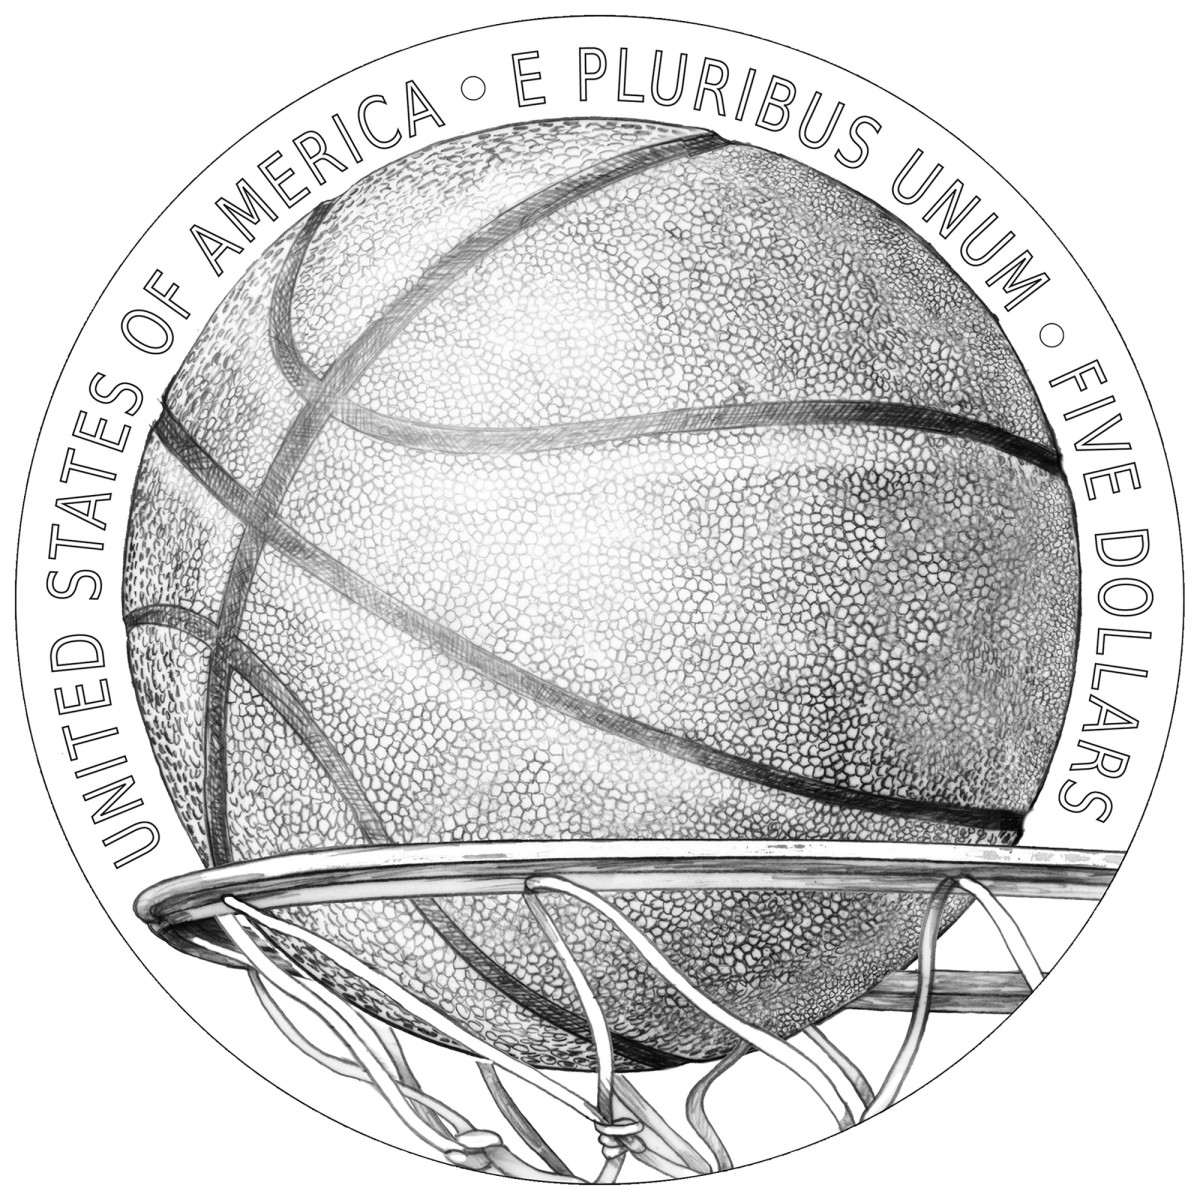 The reverse, designed by Donna Weaver, depicts a basketball about to pass through the net.